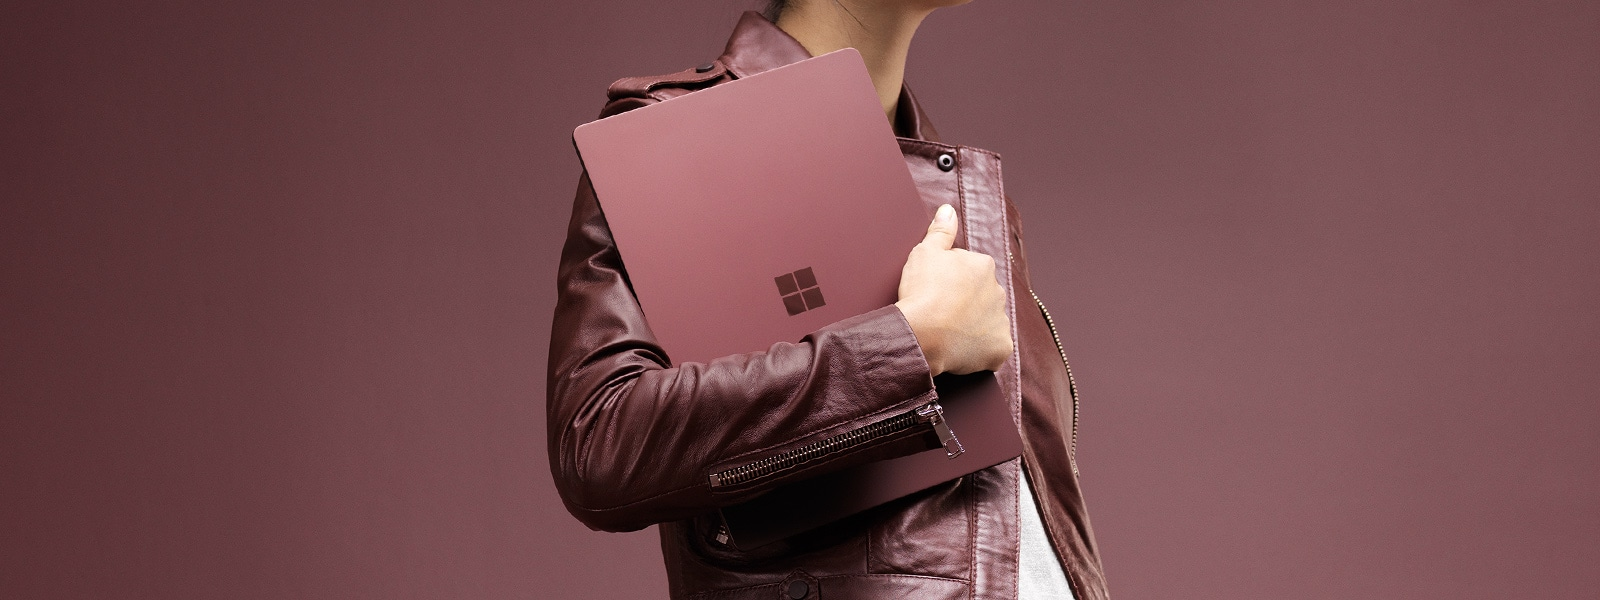 Fashionable woman holding the Burgundy Surface Laptop close to her chest